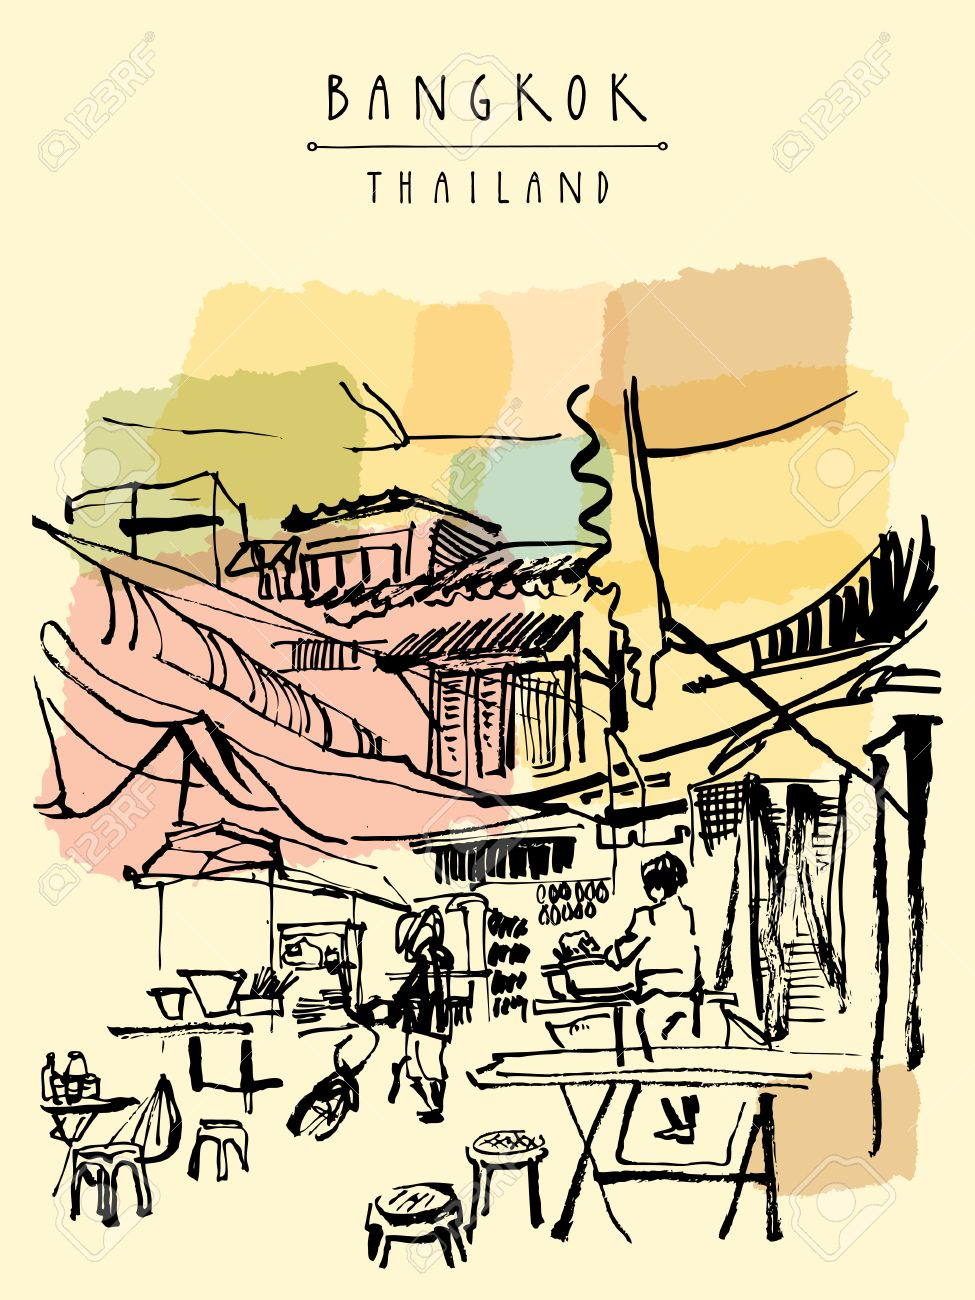 China town in Bangkok, Thailand. Food stalls, tables, stools. People buying Chinese food in a simple street cafe. Vertical vintage hand drawn postcard - 48079826